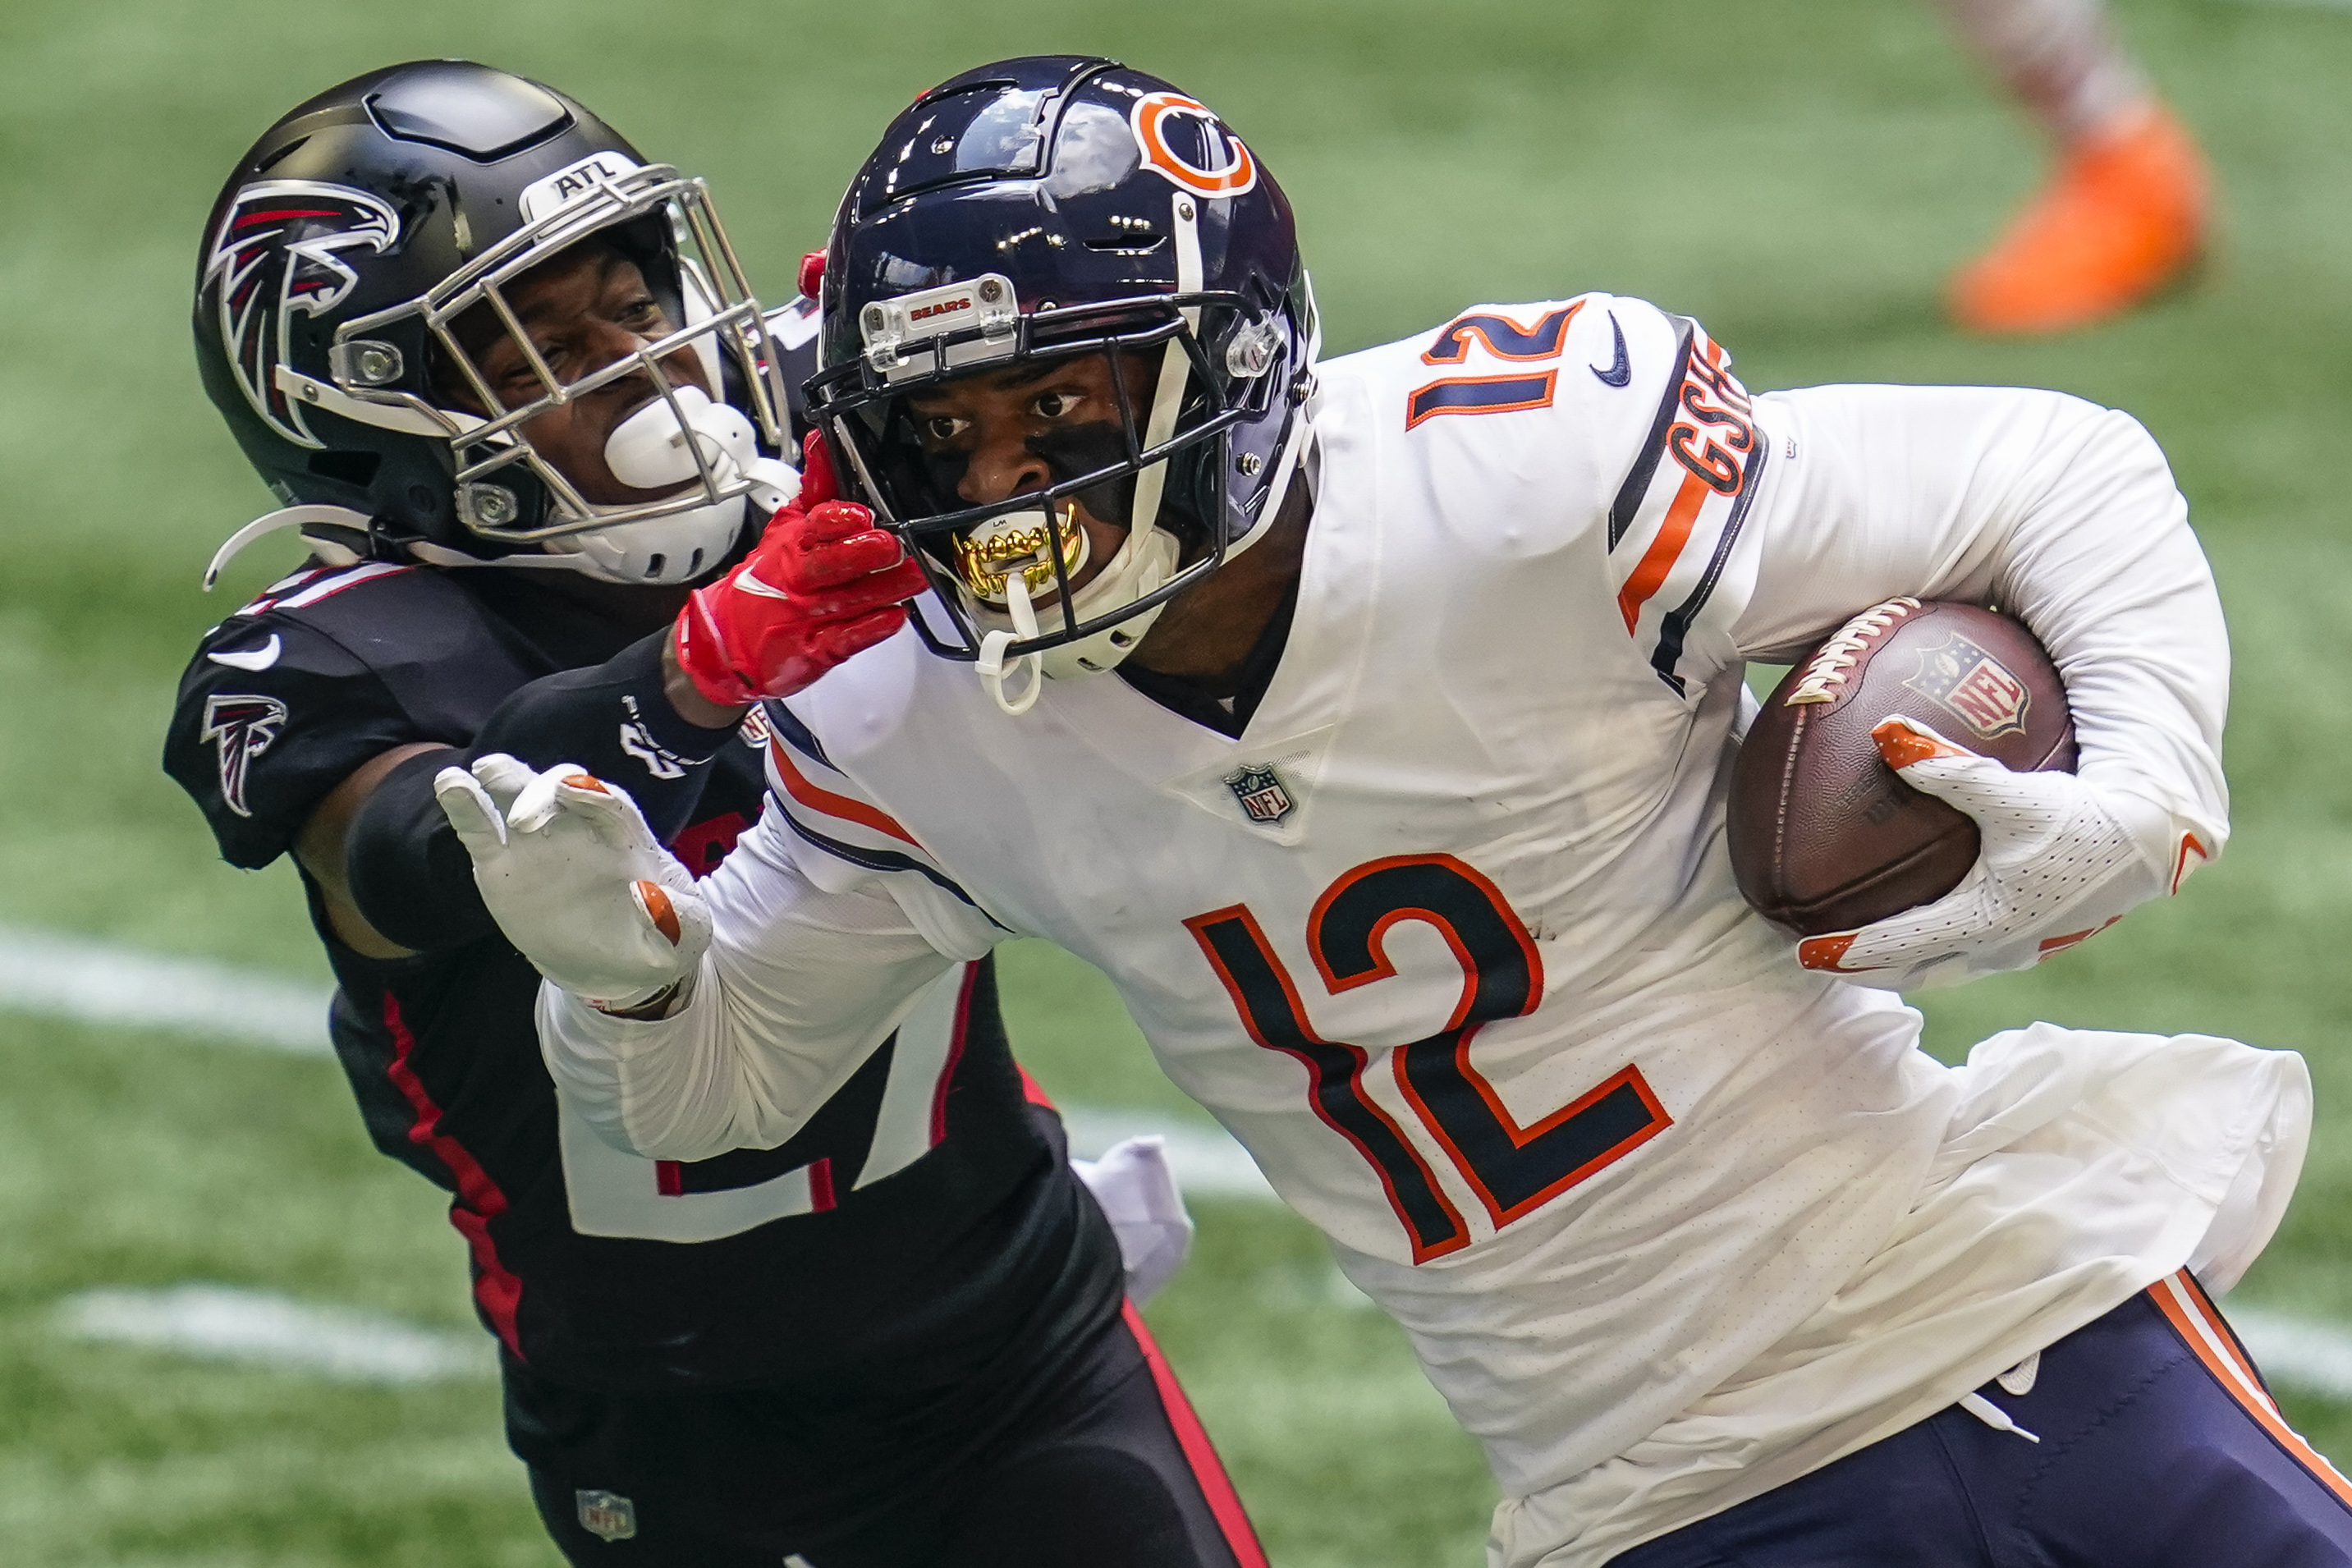 Chicago Bears wide receiver Allen Robinson II (12) runs against Atlanta Falcons safety Damontae Kazee (27) during the first half at Mercedes-Benz Stadium.